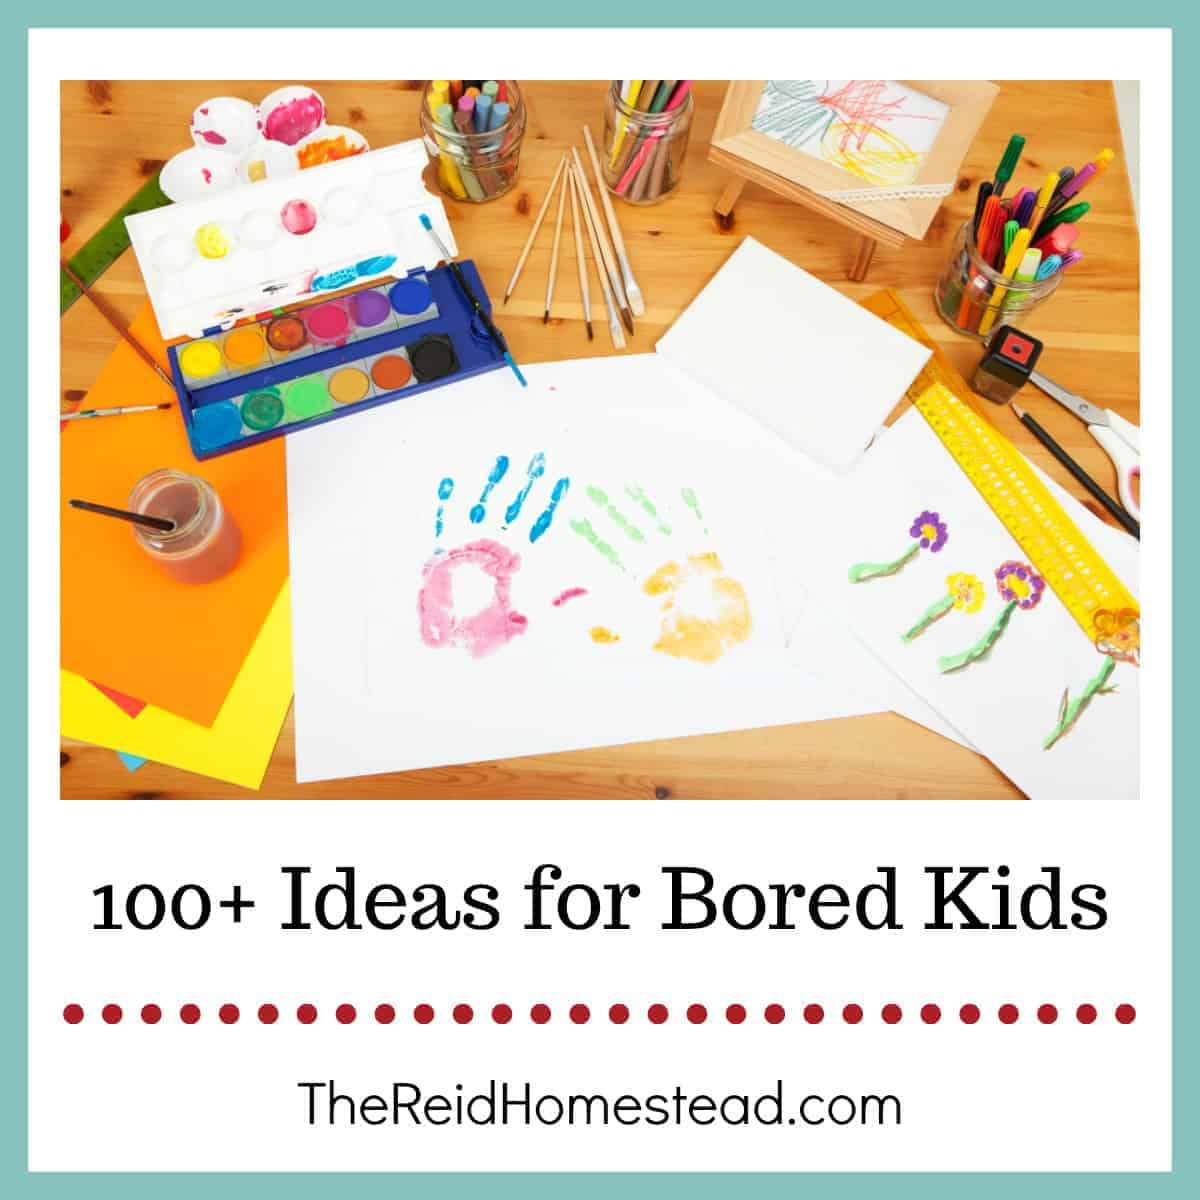 Ideas for Bored Kids on the Homestead